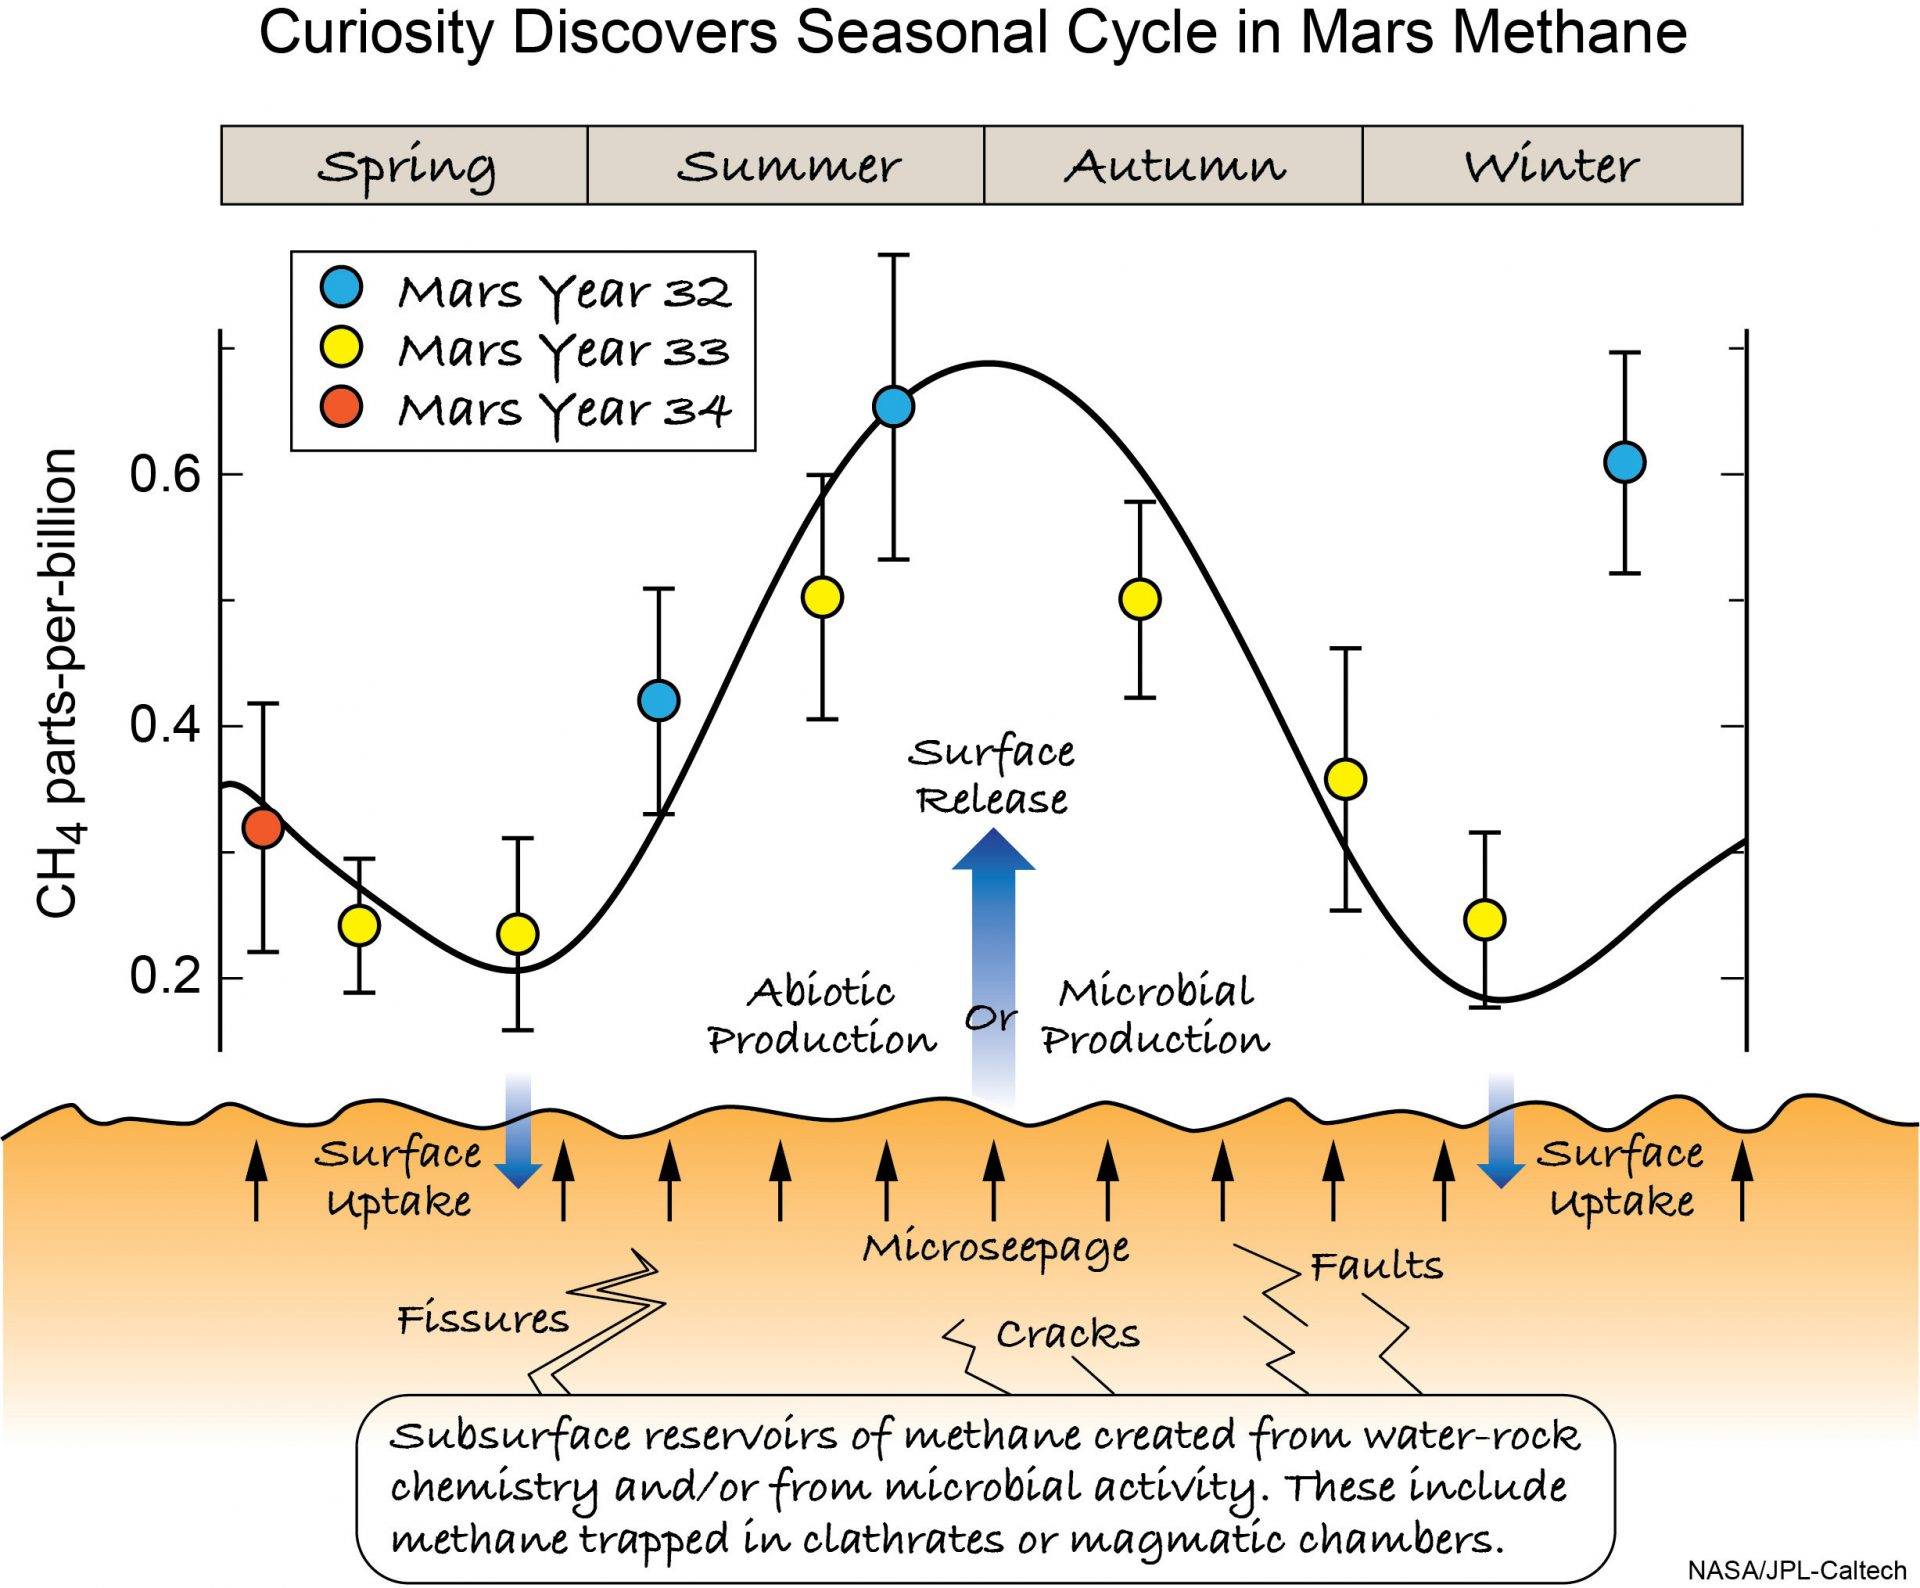 """This illustration shows the ways in which methane from the subsurface might find its way to thesurface where its uptake and release could produce a large seasonal variation in the atmosphereas observed by Curiosity. Potential methane sources include methanogenesis, UV degradation oforganics, or water-rock chemistry; and its losses include atmospheric photochemistry and surfacereactions. Seasons refer to the northern hemisphere. The plotted data is from Curiosity's TLSSAMinstrument, and the curved line through the data is to aid the eye. This material relates to a paper that appeared in the date, issue of Science, published by AAAS. The paper, by C.R. Webster at NASA Jet Propulsion Laboratory in Pasadena, CA, and colleagues was titled, """"Background levels of methane in Mars' atmosphere show strong seasonal variations."""" (Credit: NASA/JPL-Caltech)"""